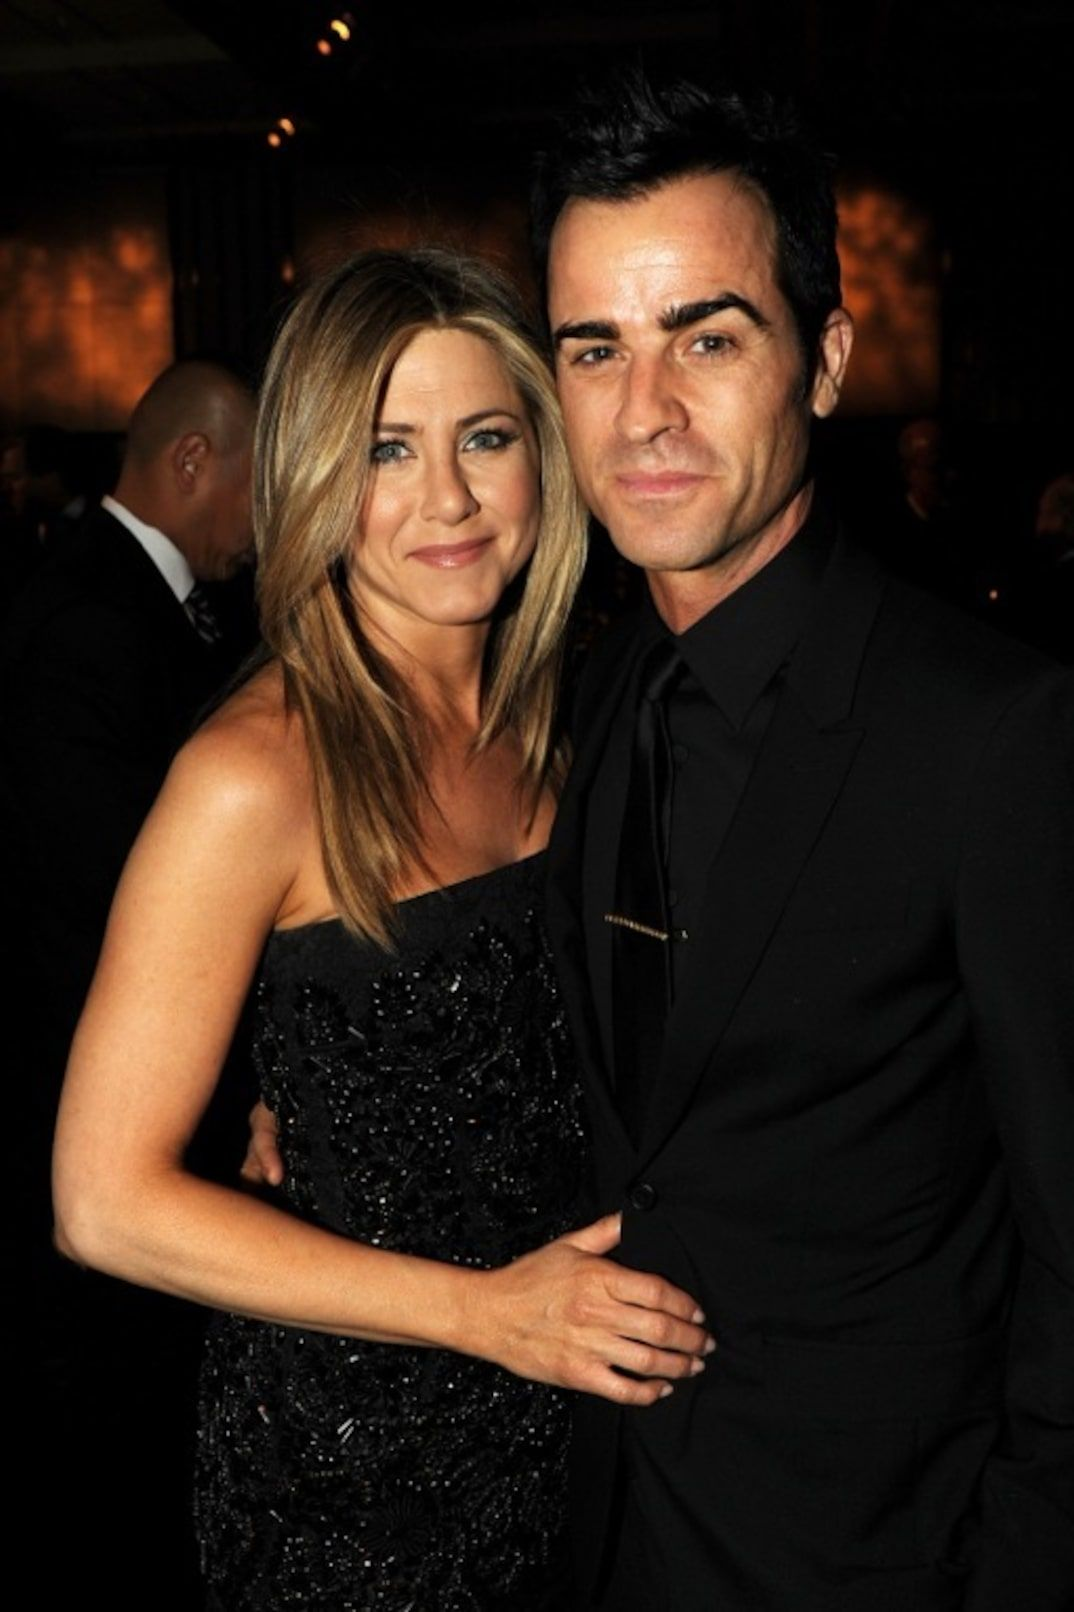 Jennifer Aniston And Justin Theroux Together In 2020 Jennifer Aniston Wedding Dress Jennifer Aniston Wedding Jennifer Aniston Pictures